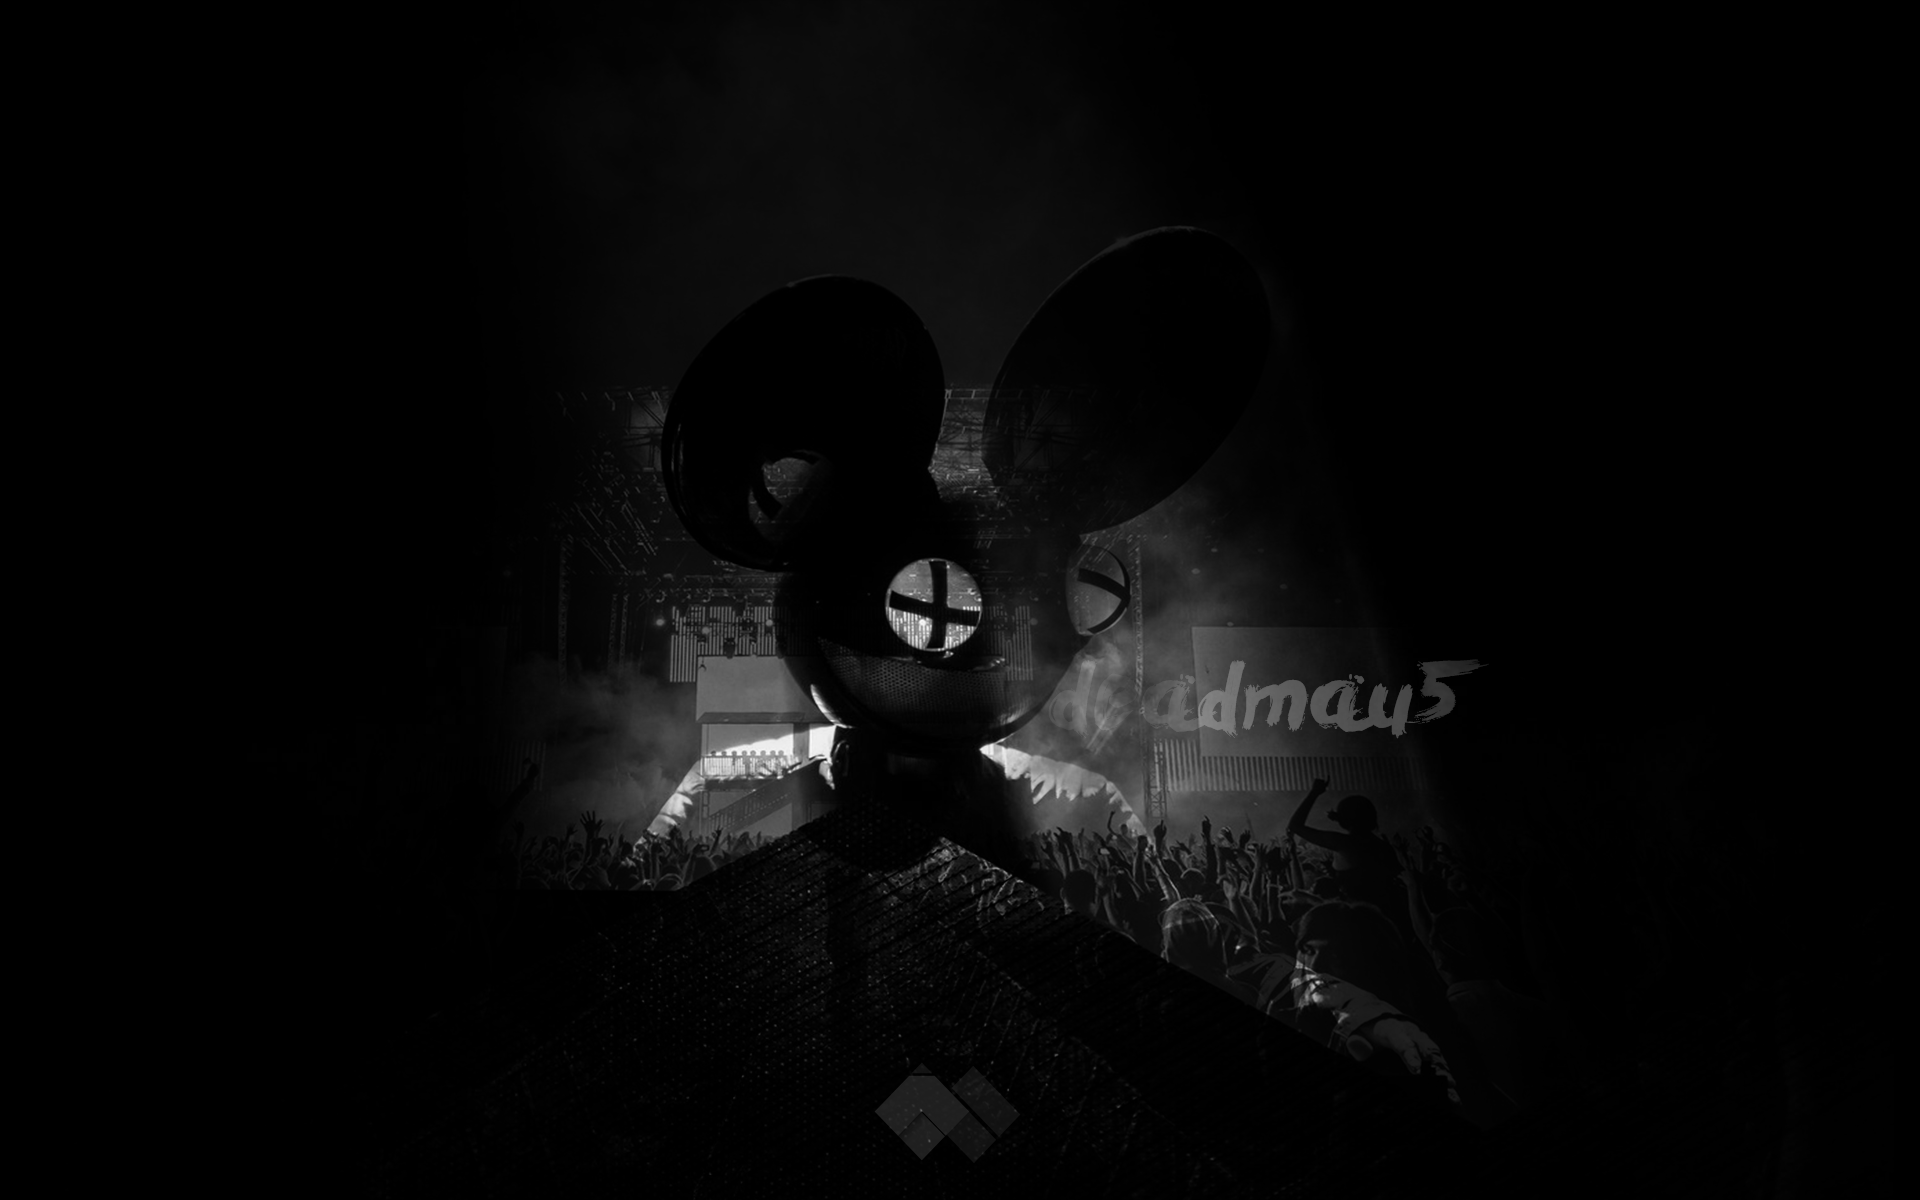 Deadmau5 High Quality Wallpapers